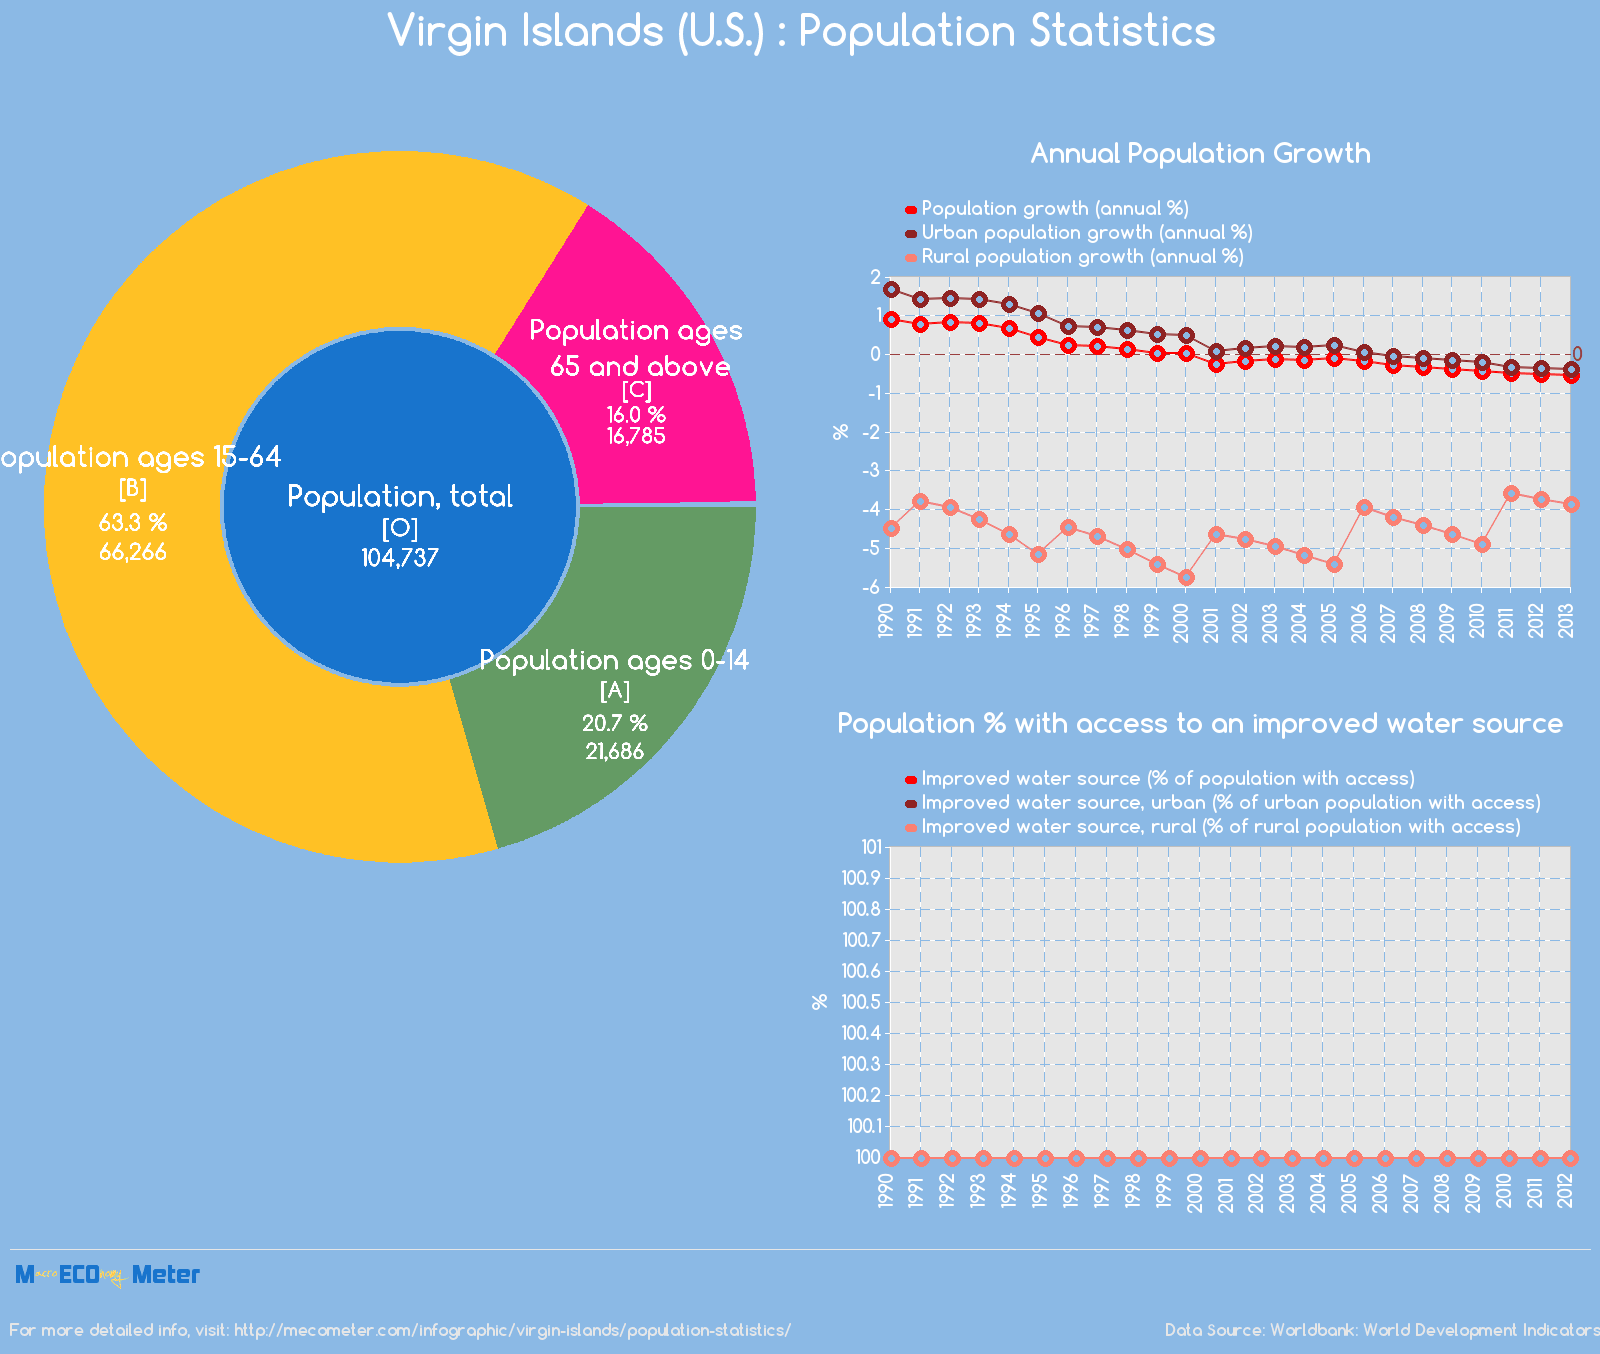 Virgin Islands (U.S.) : Population Statistics